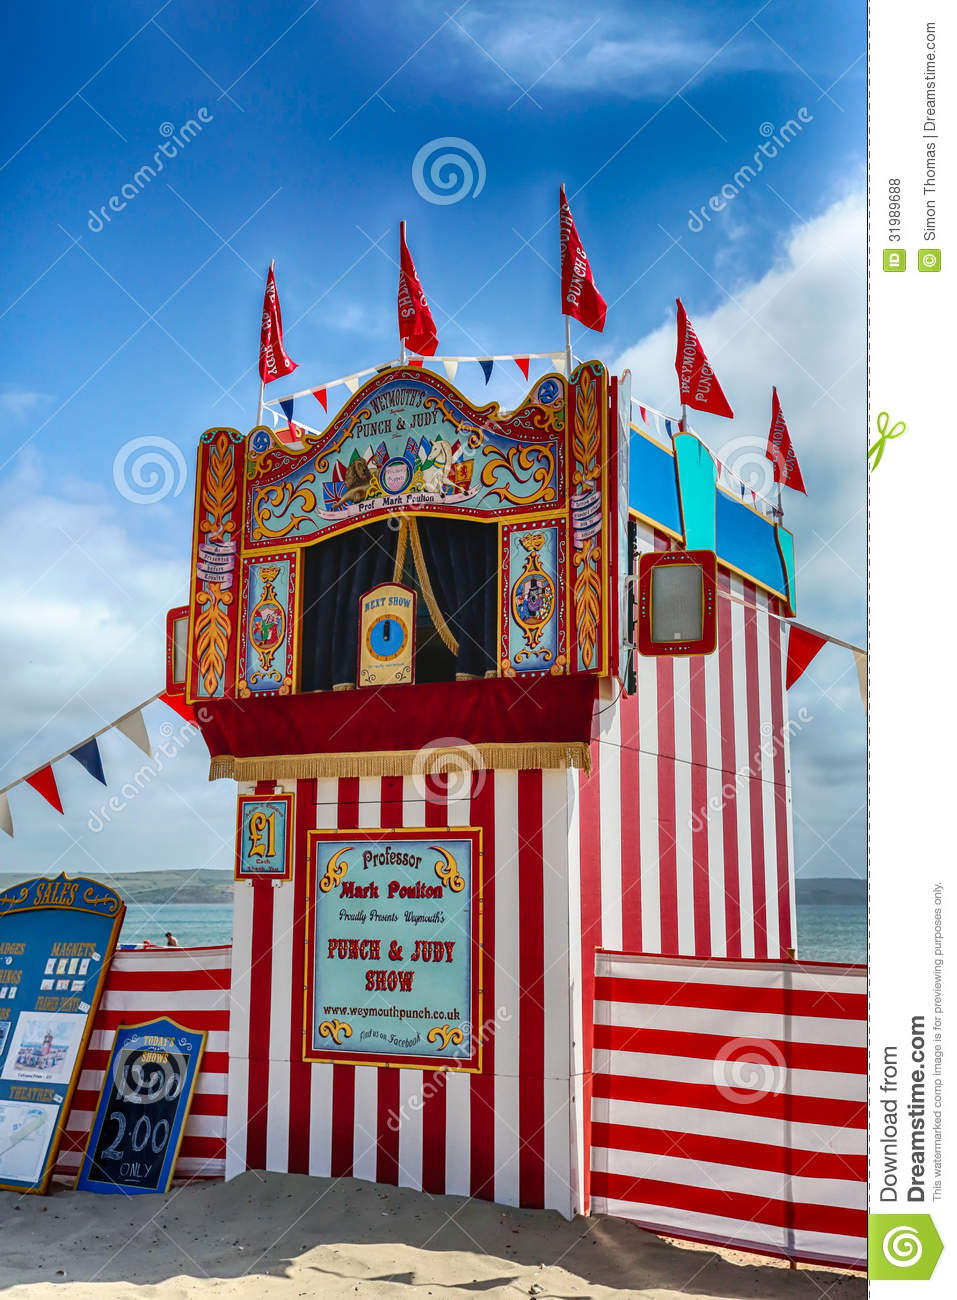 Punch & Judy Editorial Stock Photo.